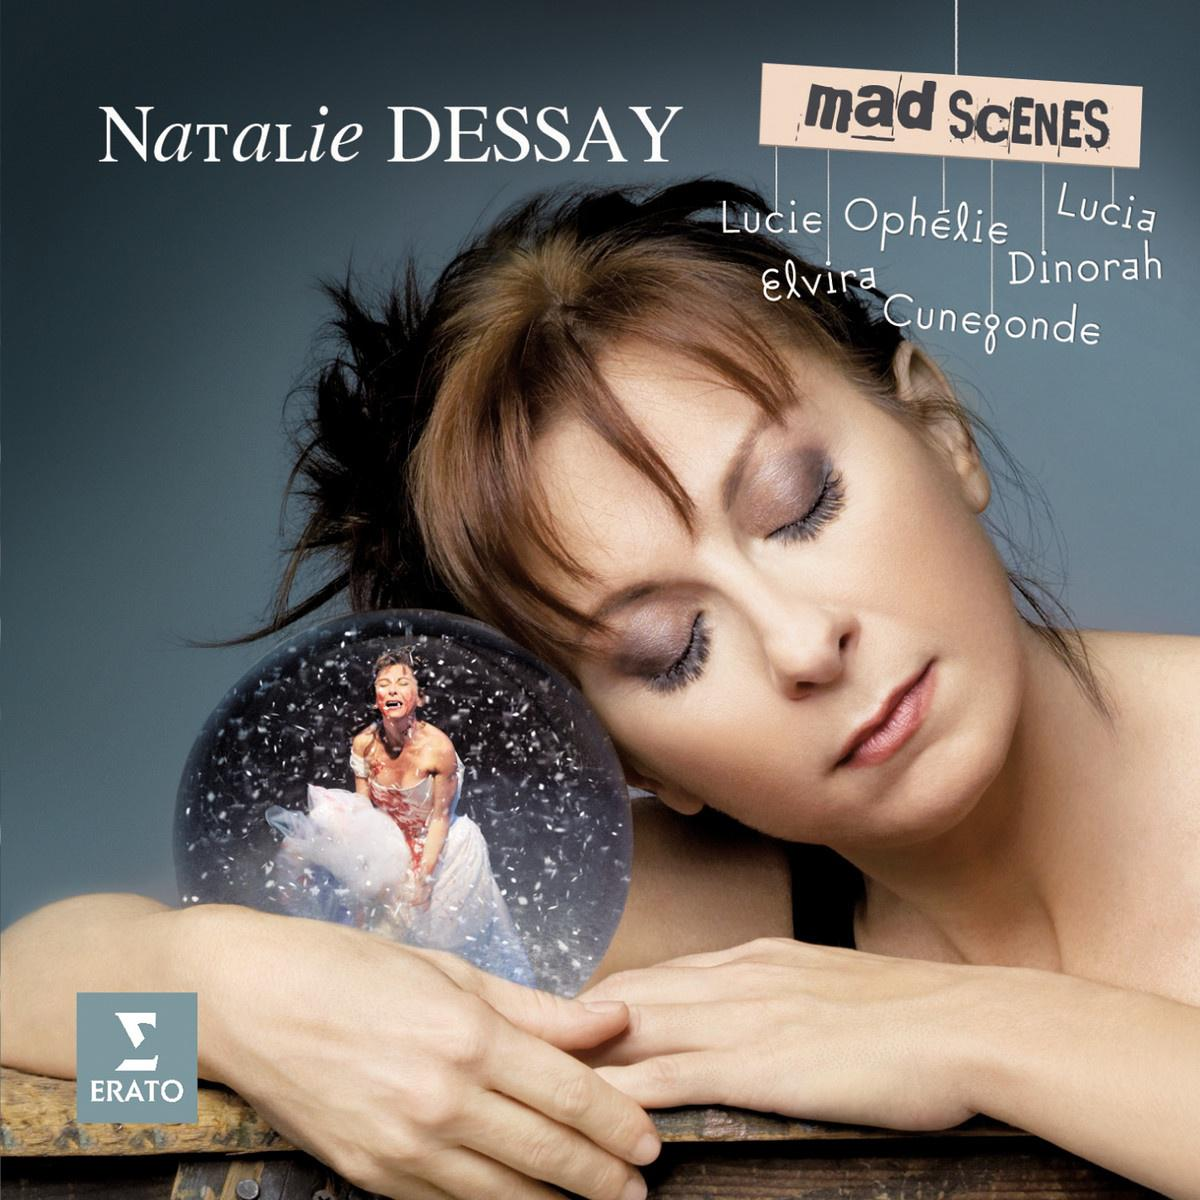 natalie dessay children French soprano natalie dessay first rose to global prominence in 1990, winning first prize at the international mozart competition in vienna.